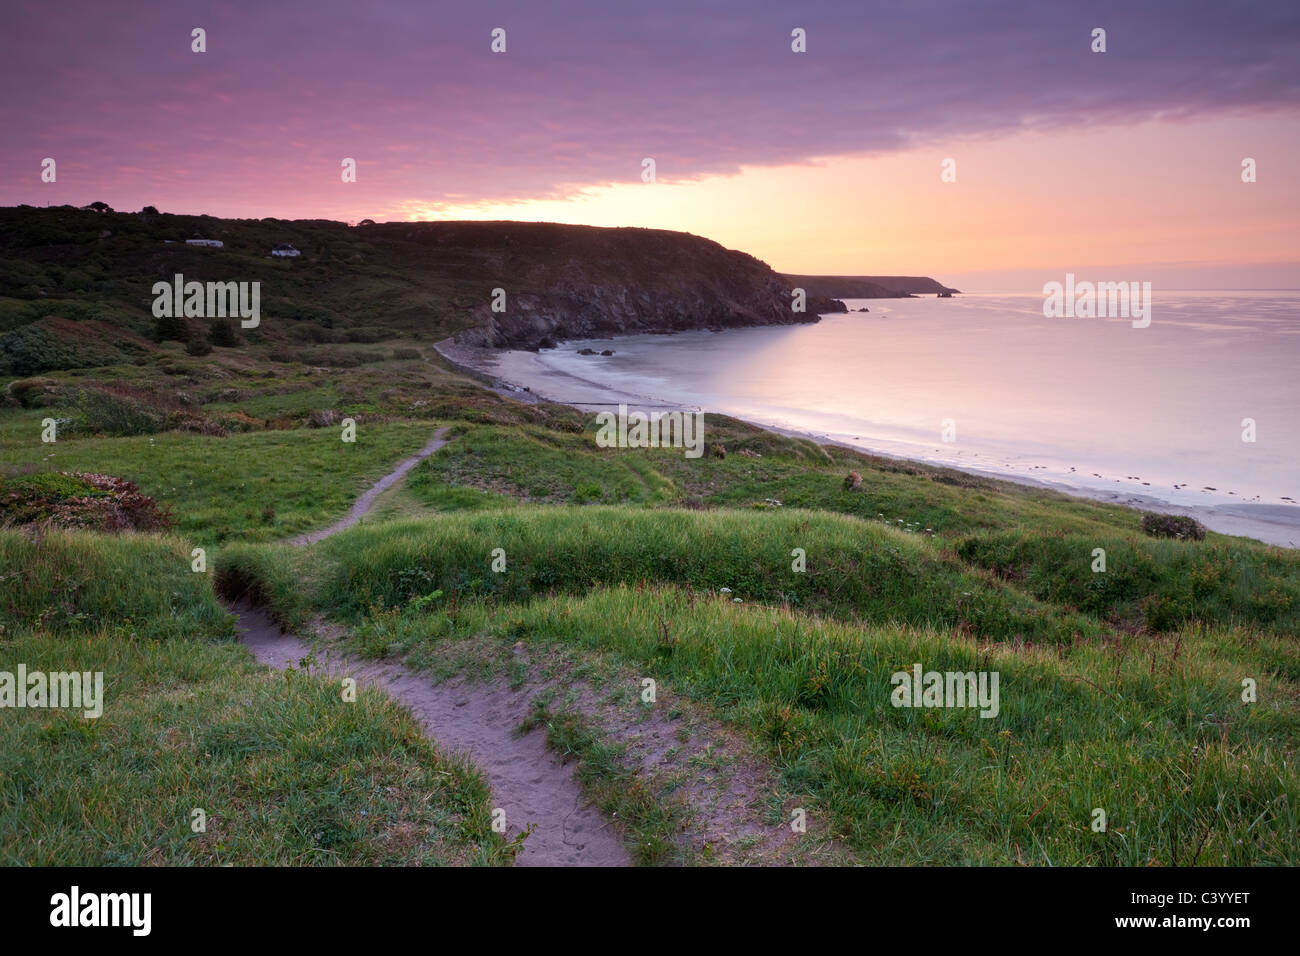 Sunrise on the South West Coast Path at Kennack Sands, Lizard Peninsula, Cornwall, England. Spring (May) 2011. - Stock Image